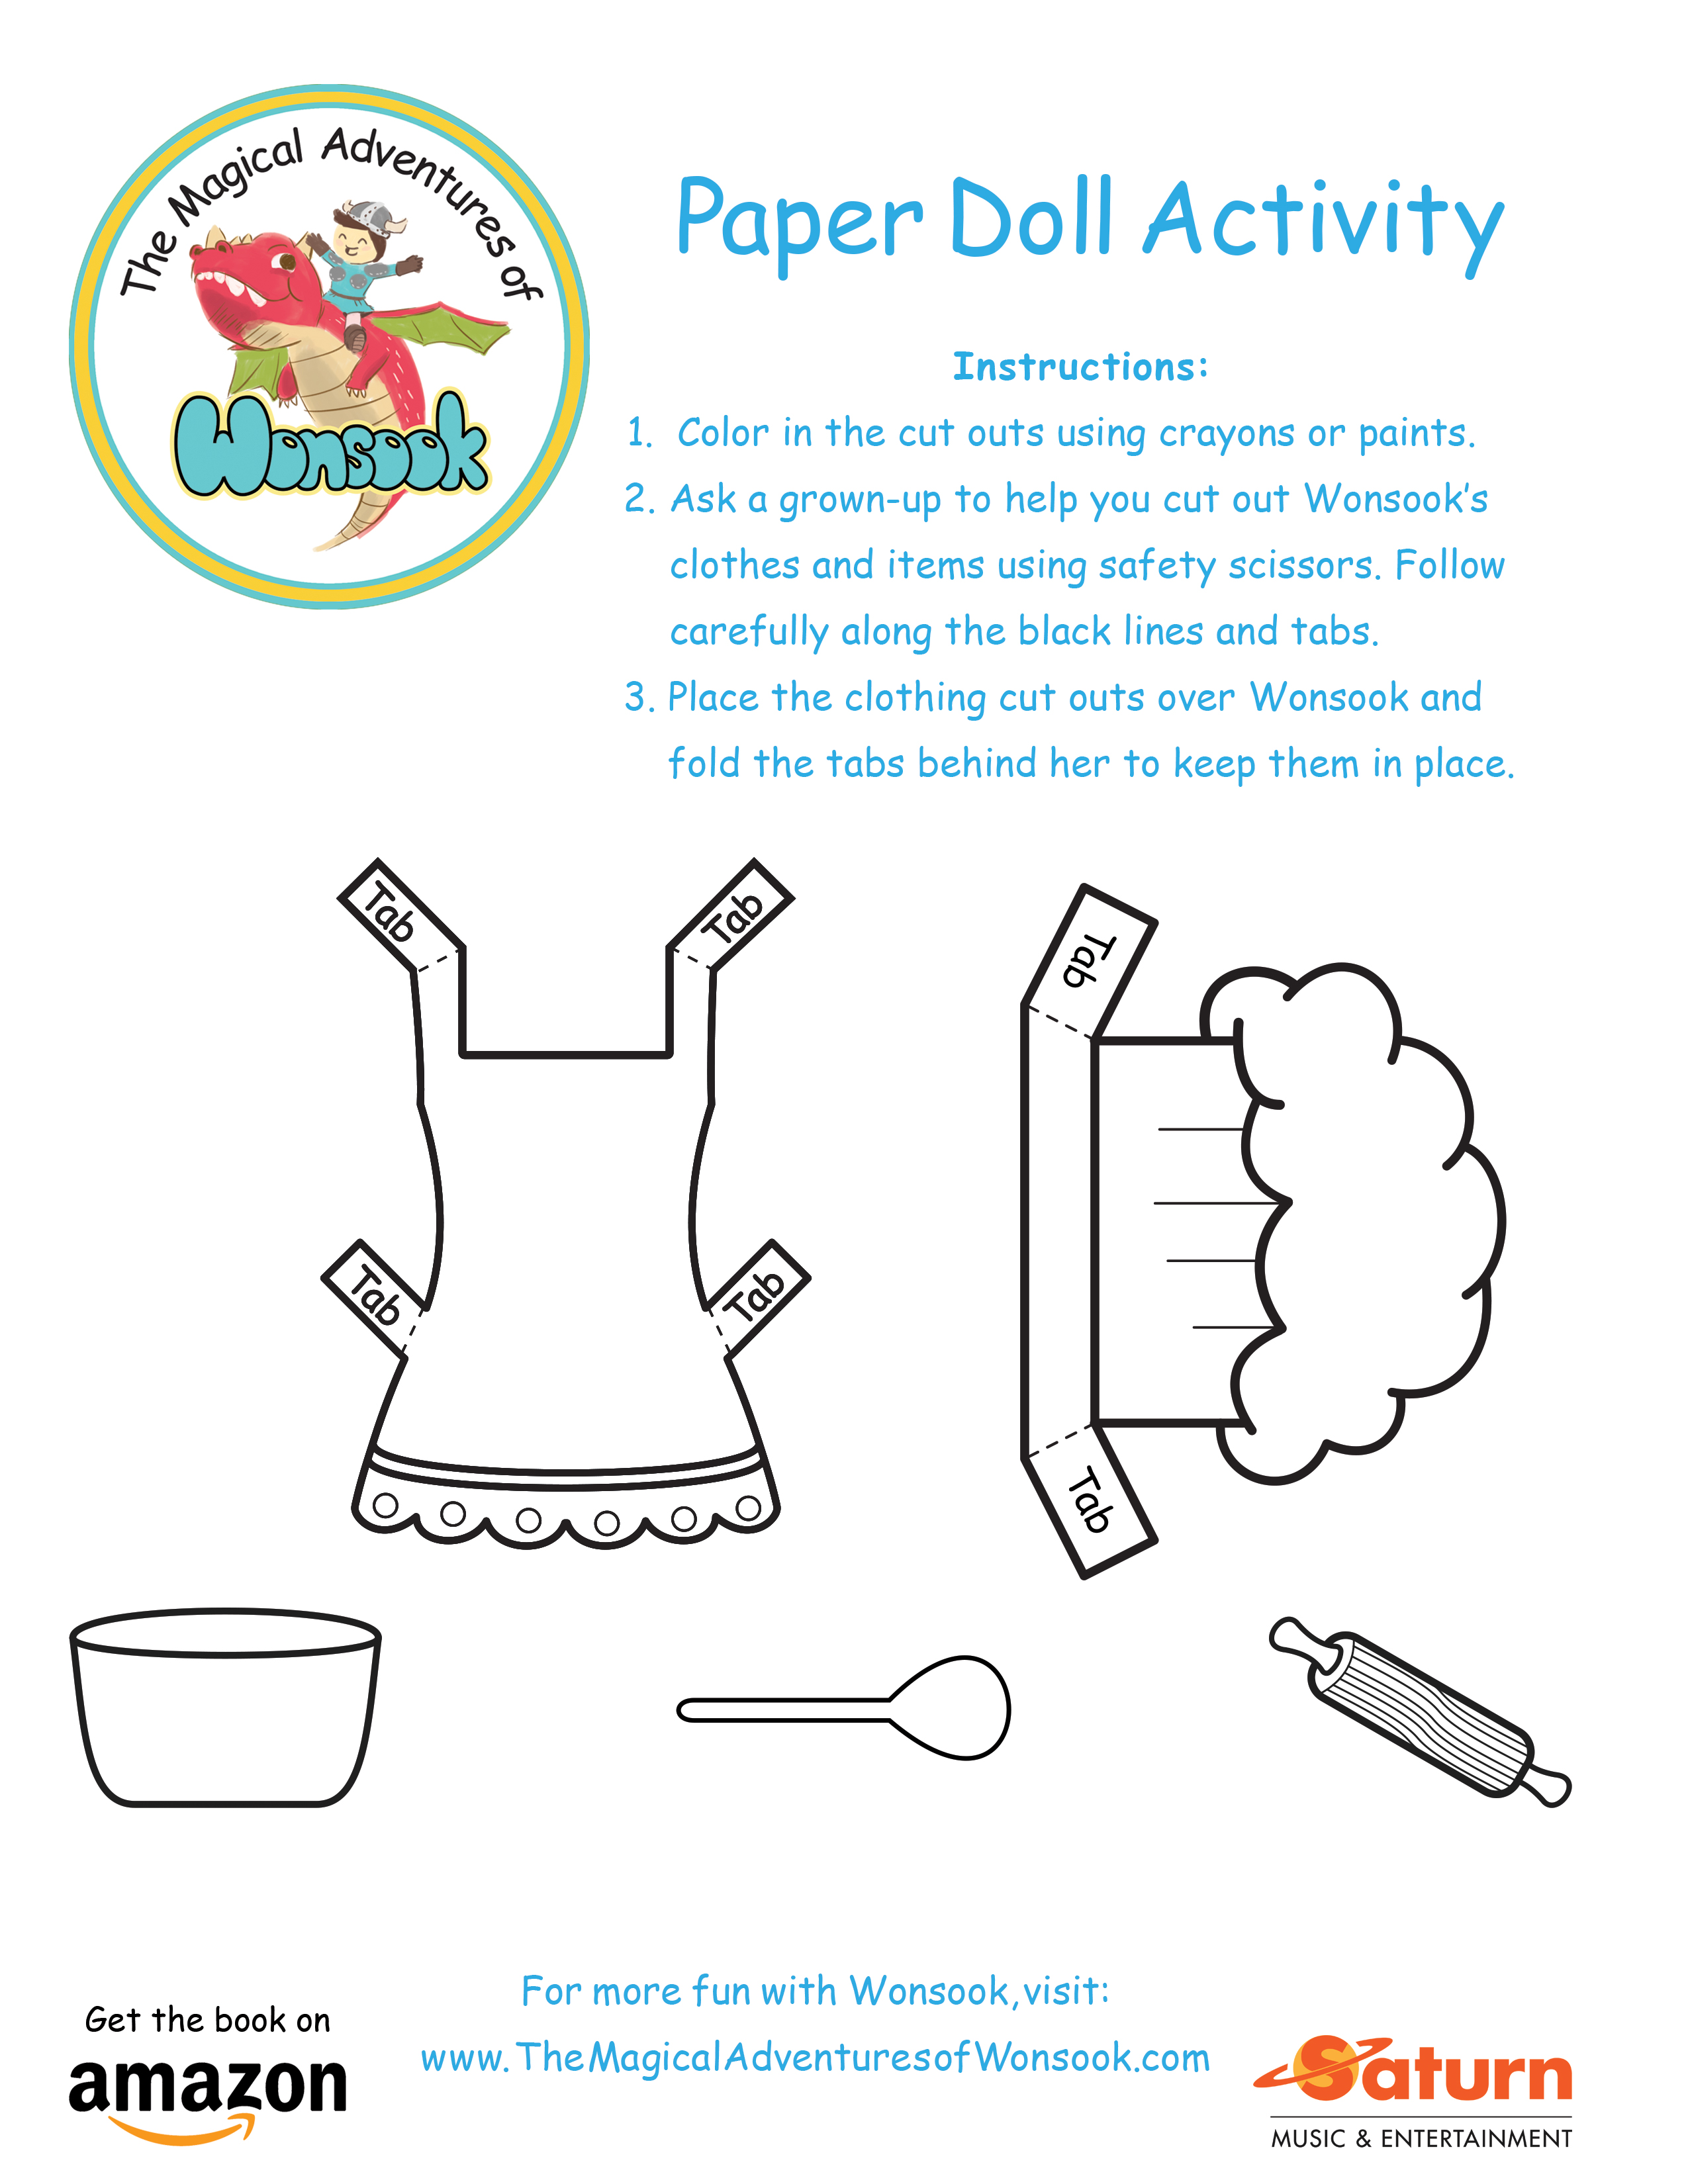 The Magical Adventures of Wonsook Paper Doll Activity - Chef Outfit